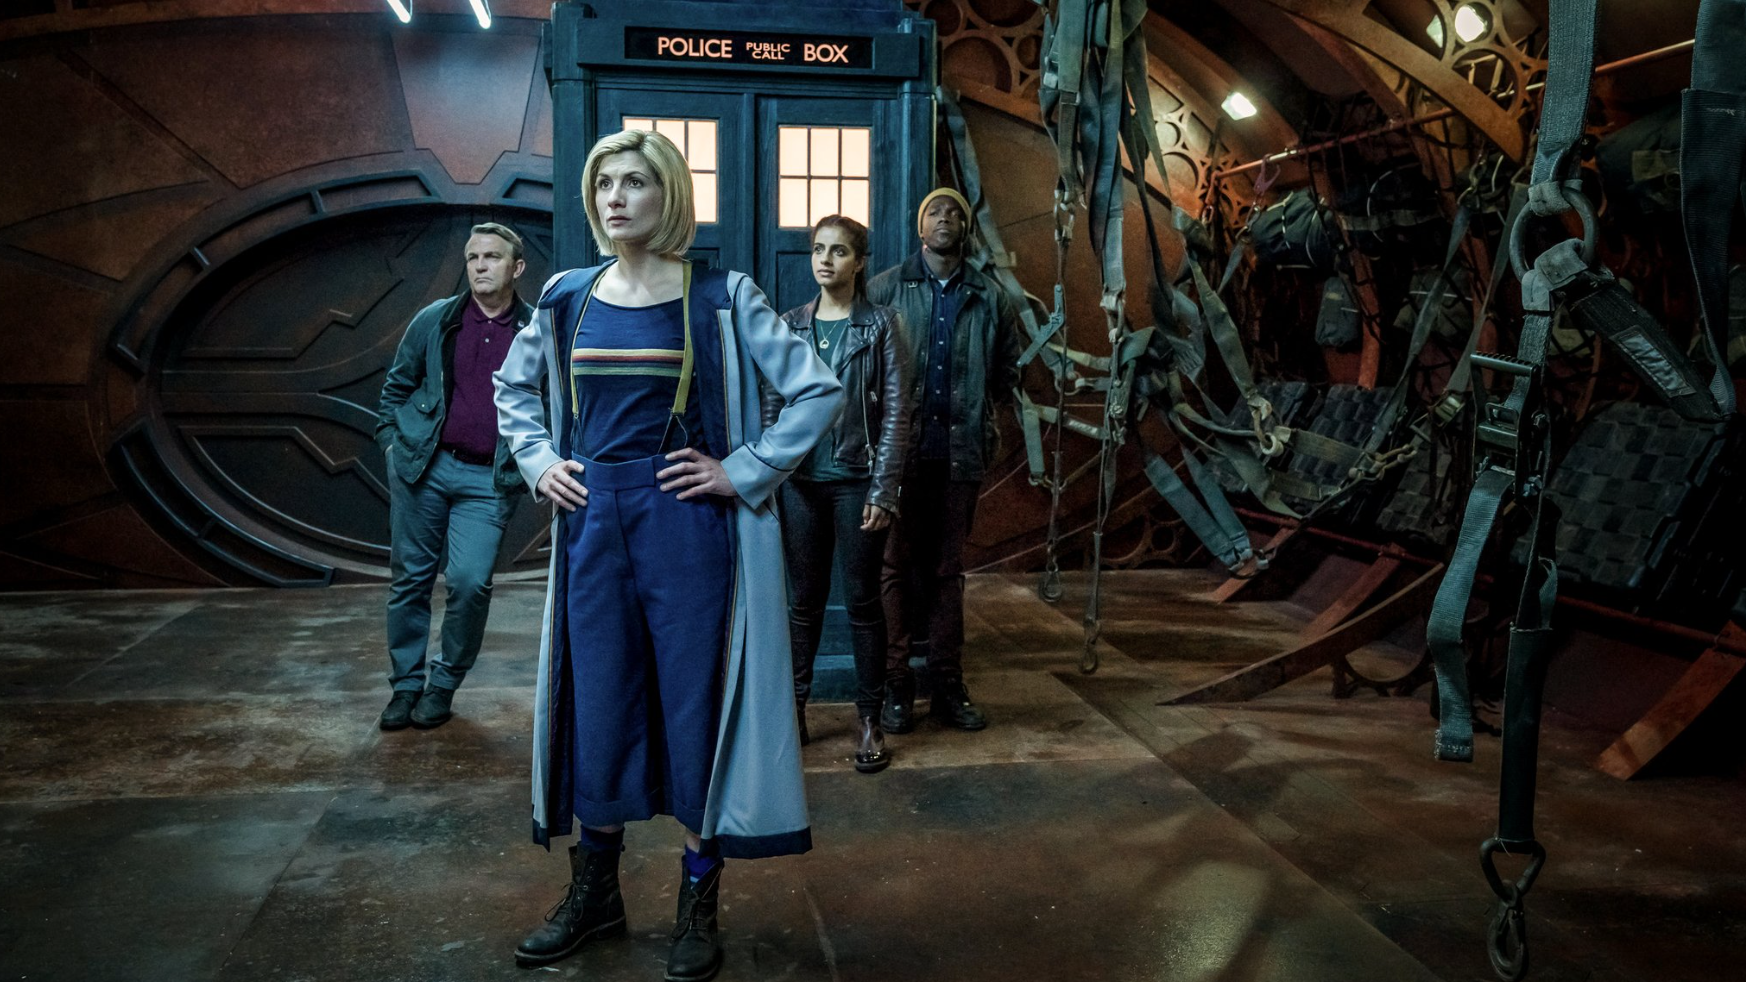 Doctor Who's Jodie Whittaker Isn't Going Anywhere